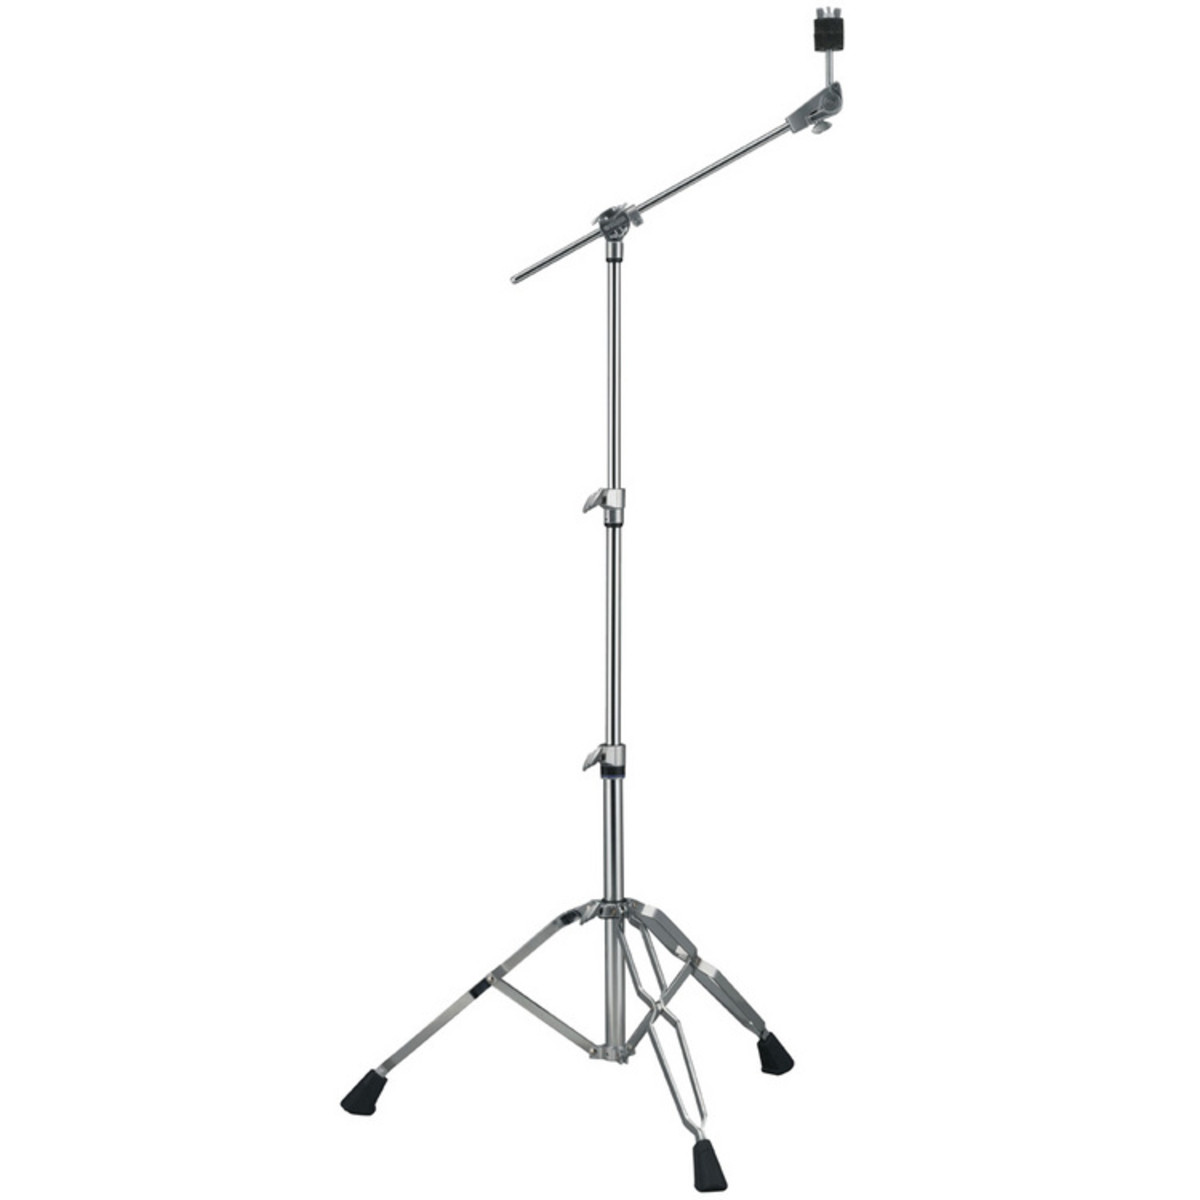 yamaha cs865 double braced cymbal stand at